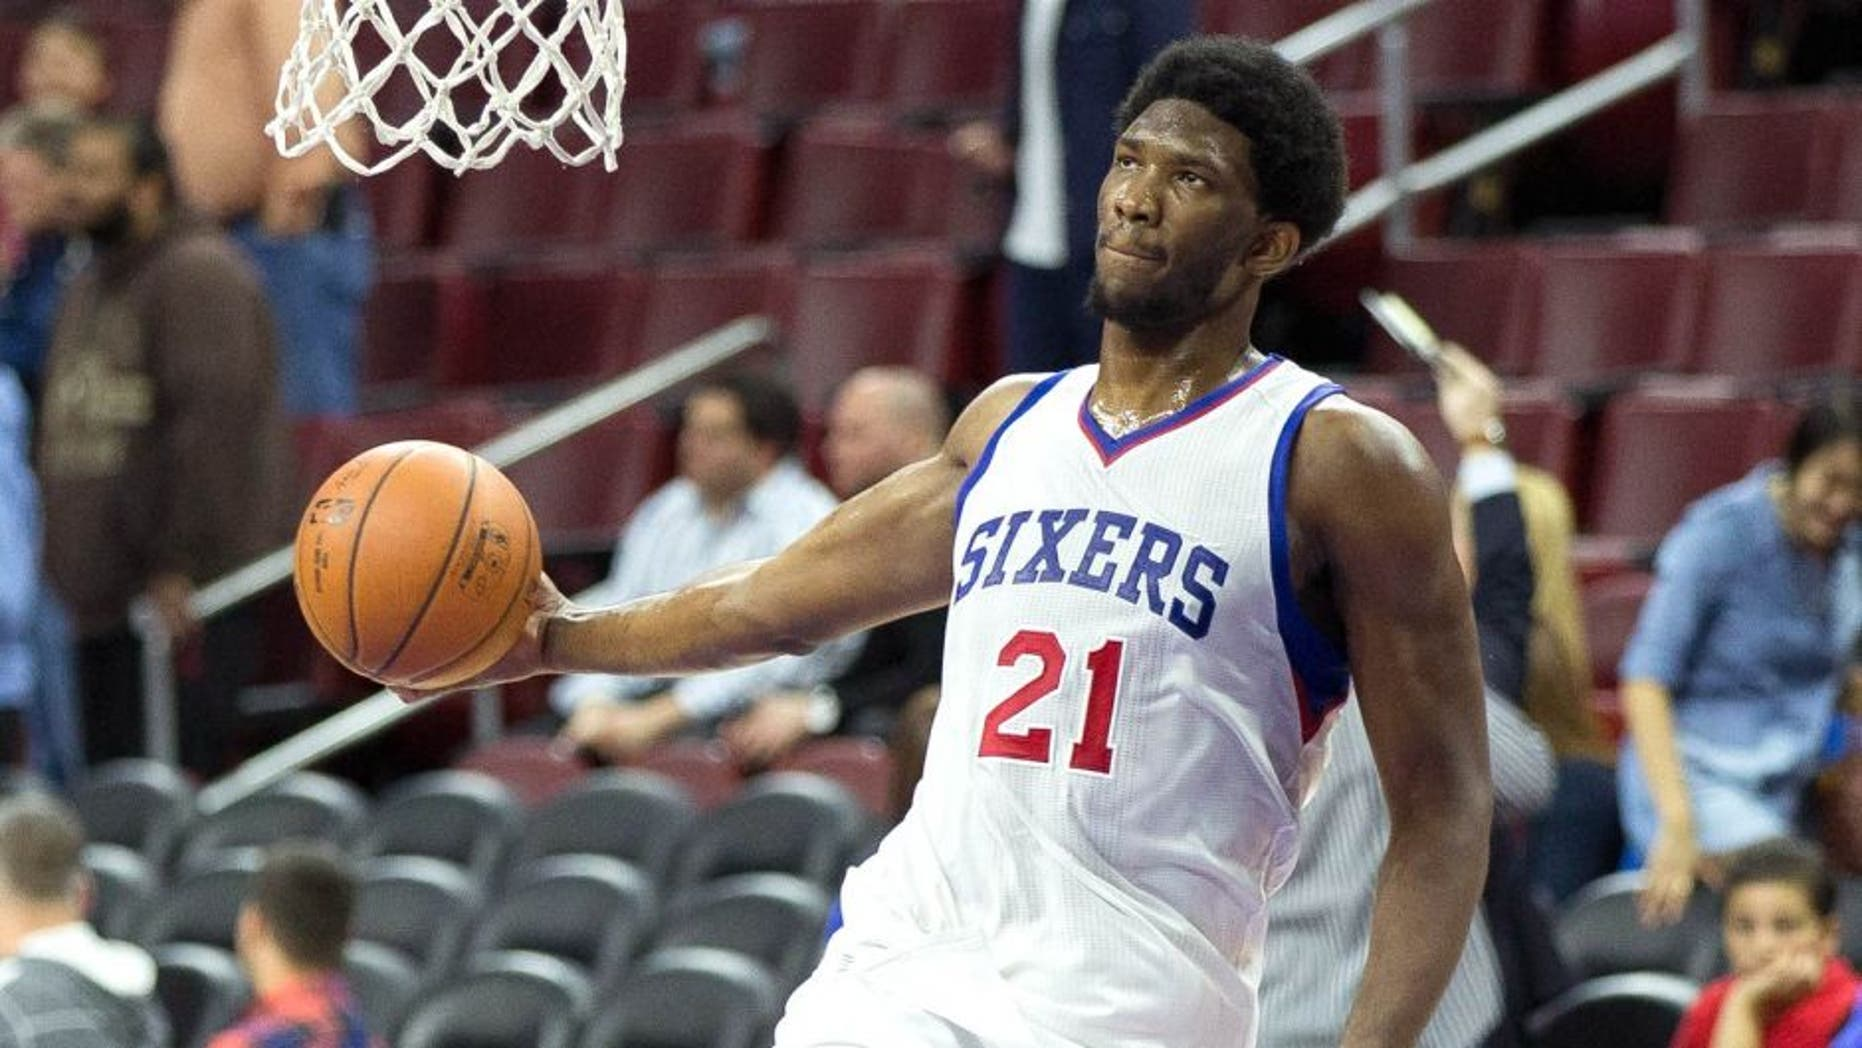 Apr 15, 2015; Philadelphia, PA, USA; Injured Philadelphia 76ers center Joel Embiid (21) dunks during warm ups before playing against the Miami Heat at Wells Fargo Center. Mandatory Credit: Bill Streicher-USA TODAY Sports